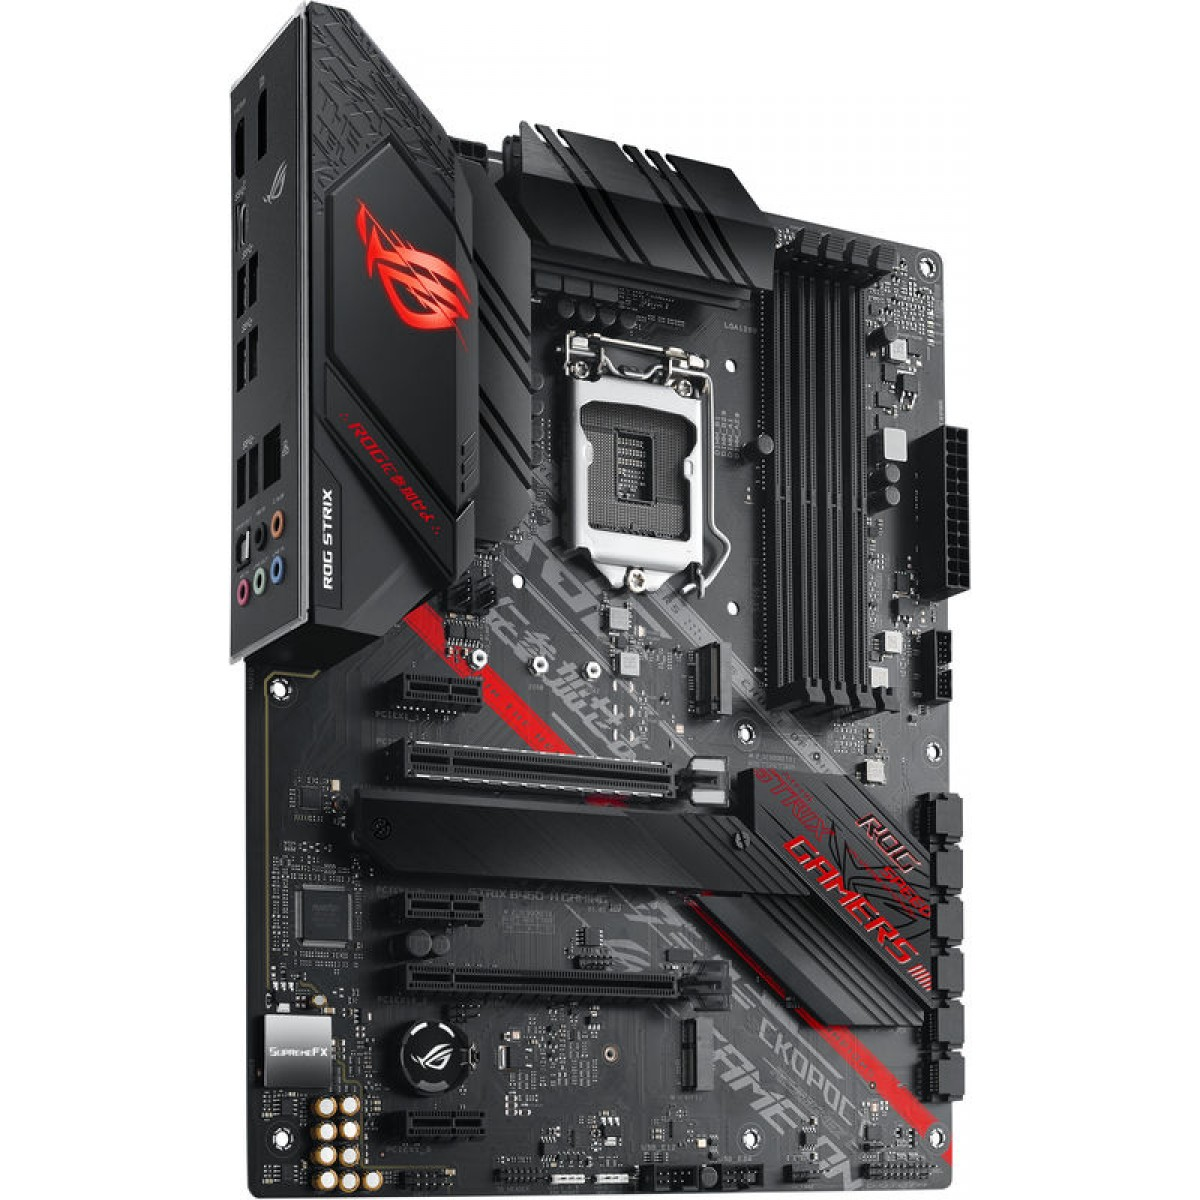 Placa Mãe Asus Rog Strix B460-H Gaming, Chipset B460, Intel LGA 1200, ATX, DDR4